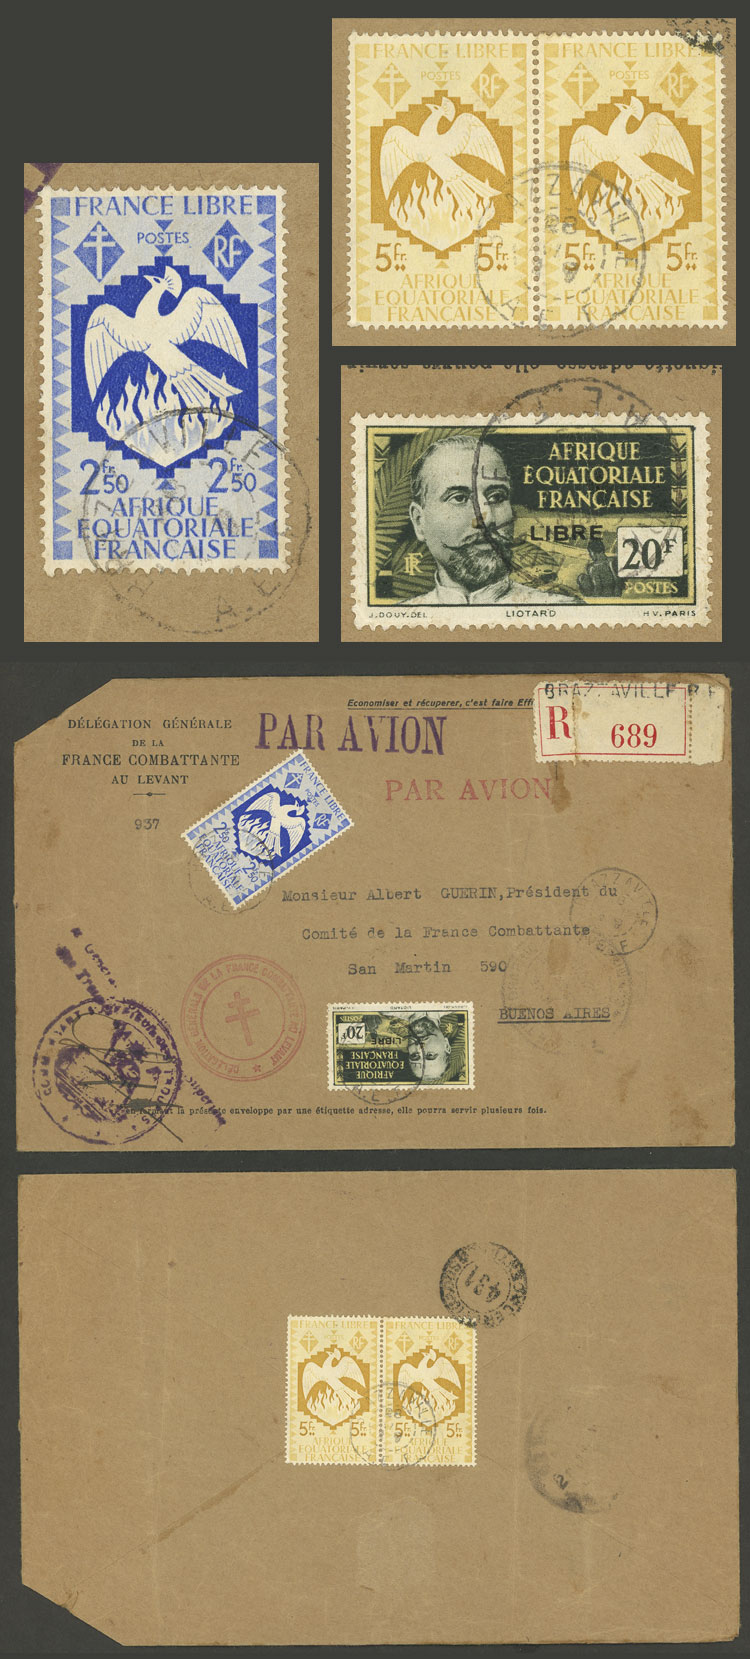 Lot 5 - French Equatorial Africa postal history -  Guillermo Jalil - Philatino Auction #1946 WORLDWIDE POSTAL HISTORY, COVERS AND CARDS